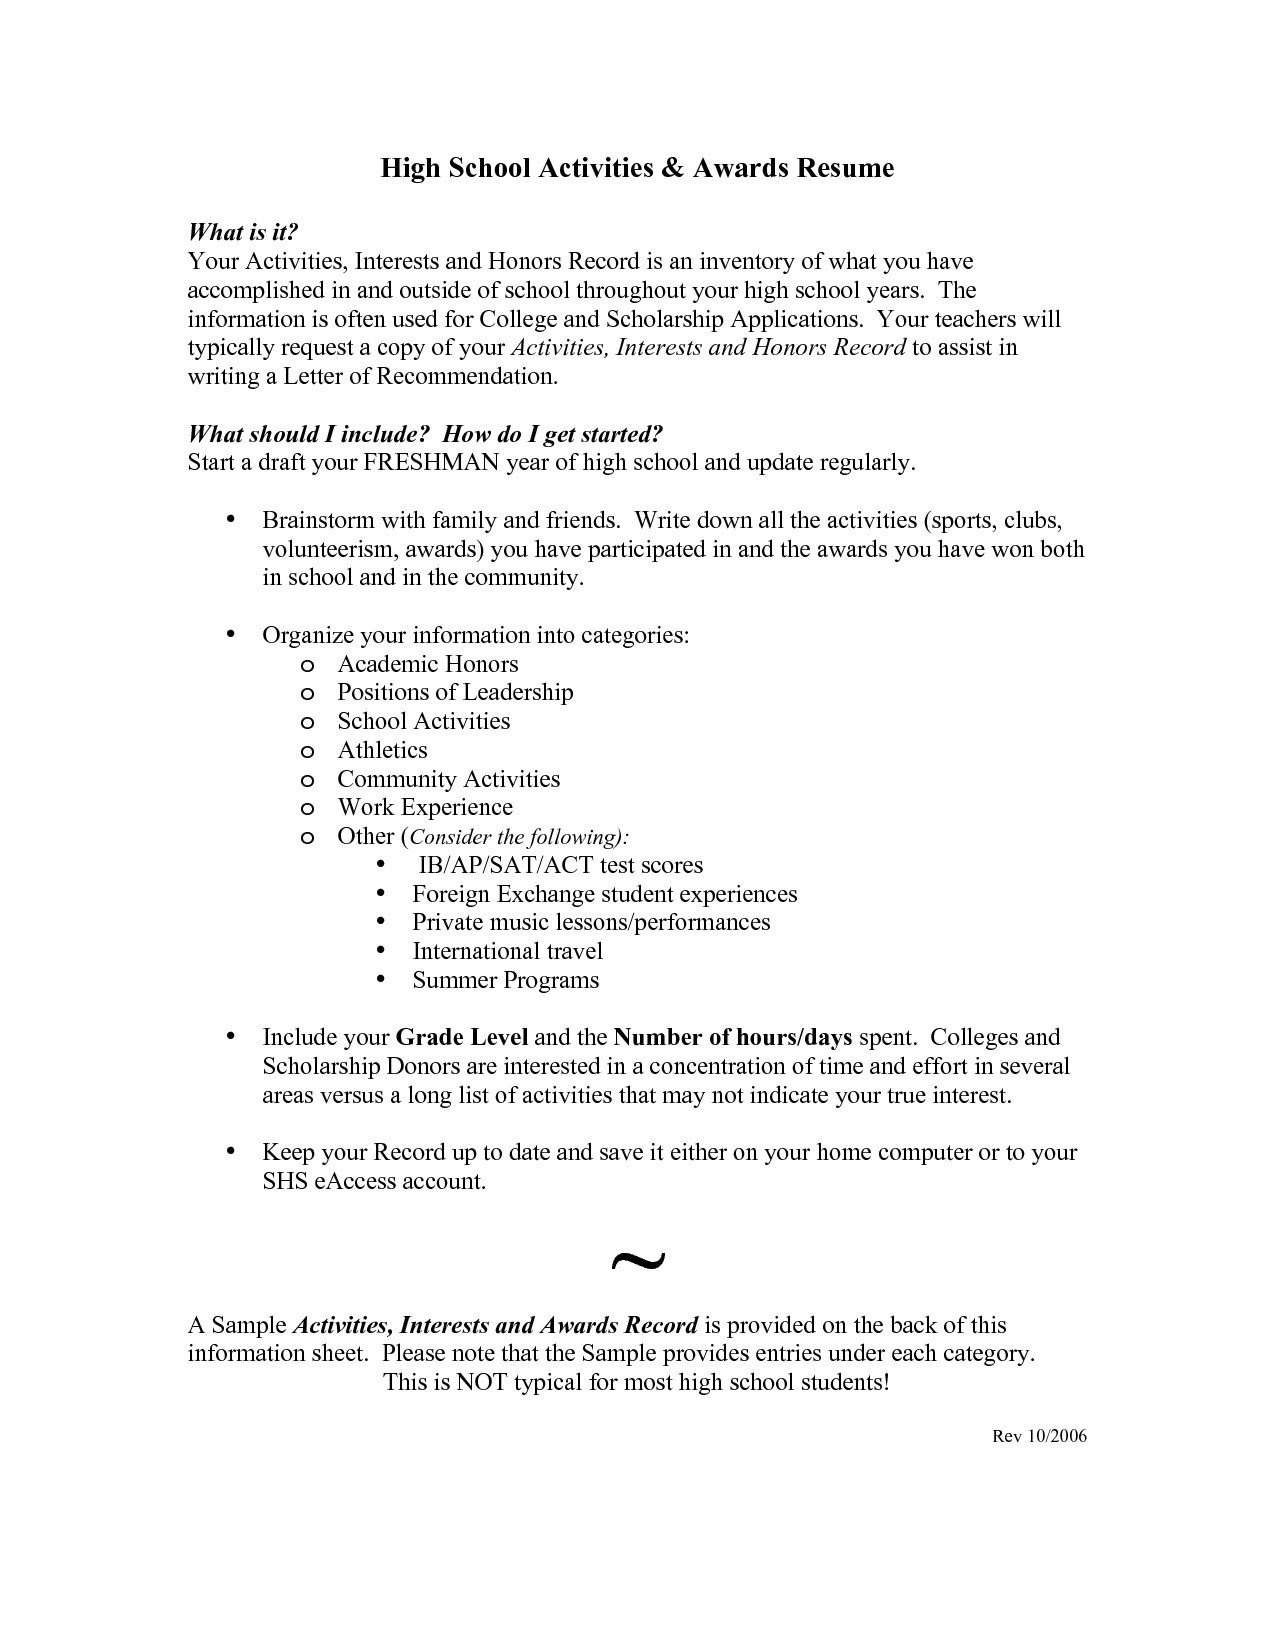 Marriott School Resume Template - High School Resume Template for College Application Beautiful